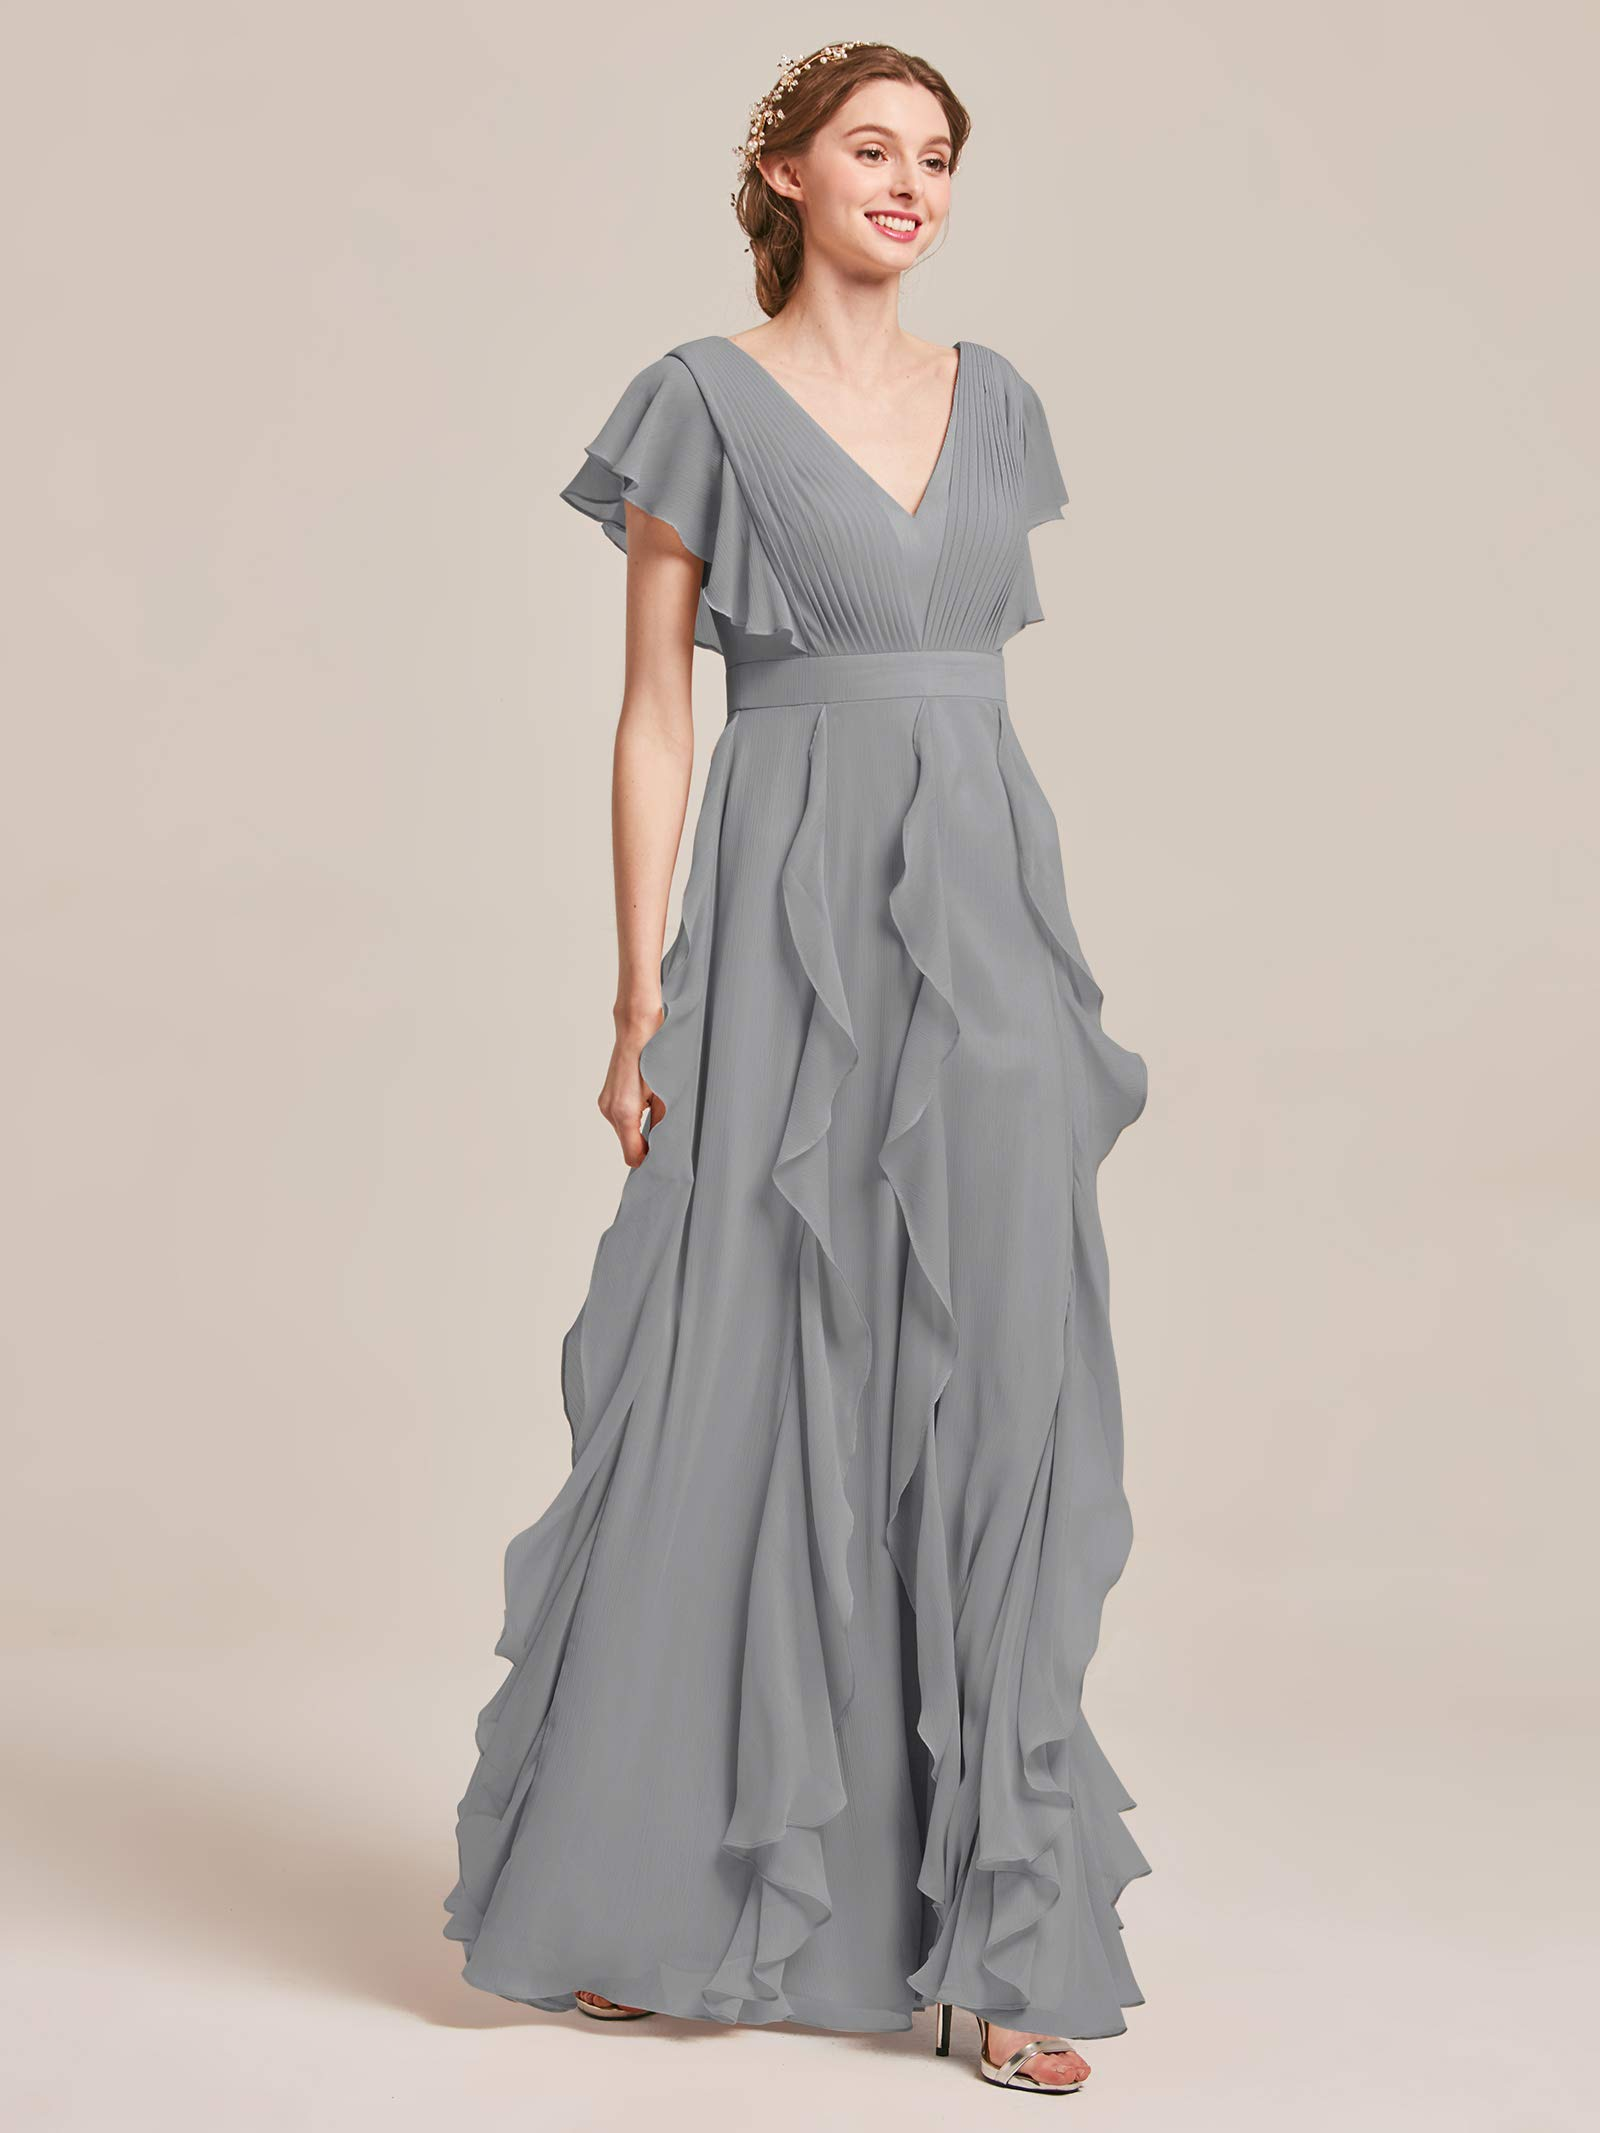 AW Bridal Plus Size Bridesmaid Dresses for Women Formal Dresses with  Sleeves Chiffon Long Gowns and Evening Dresses, Dove, US18